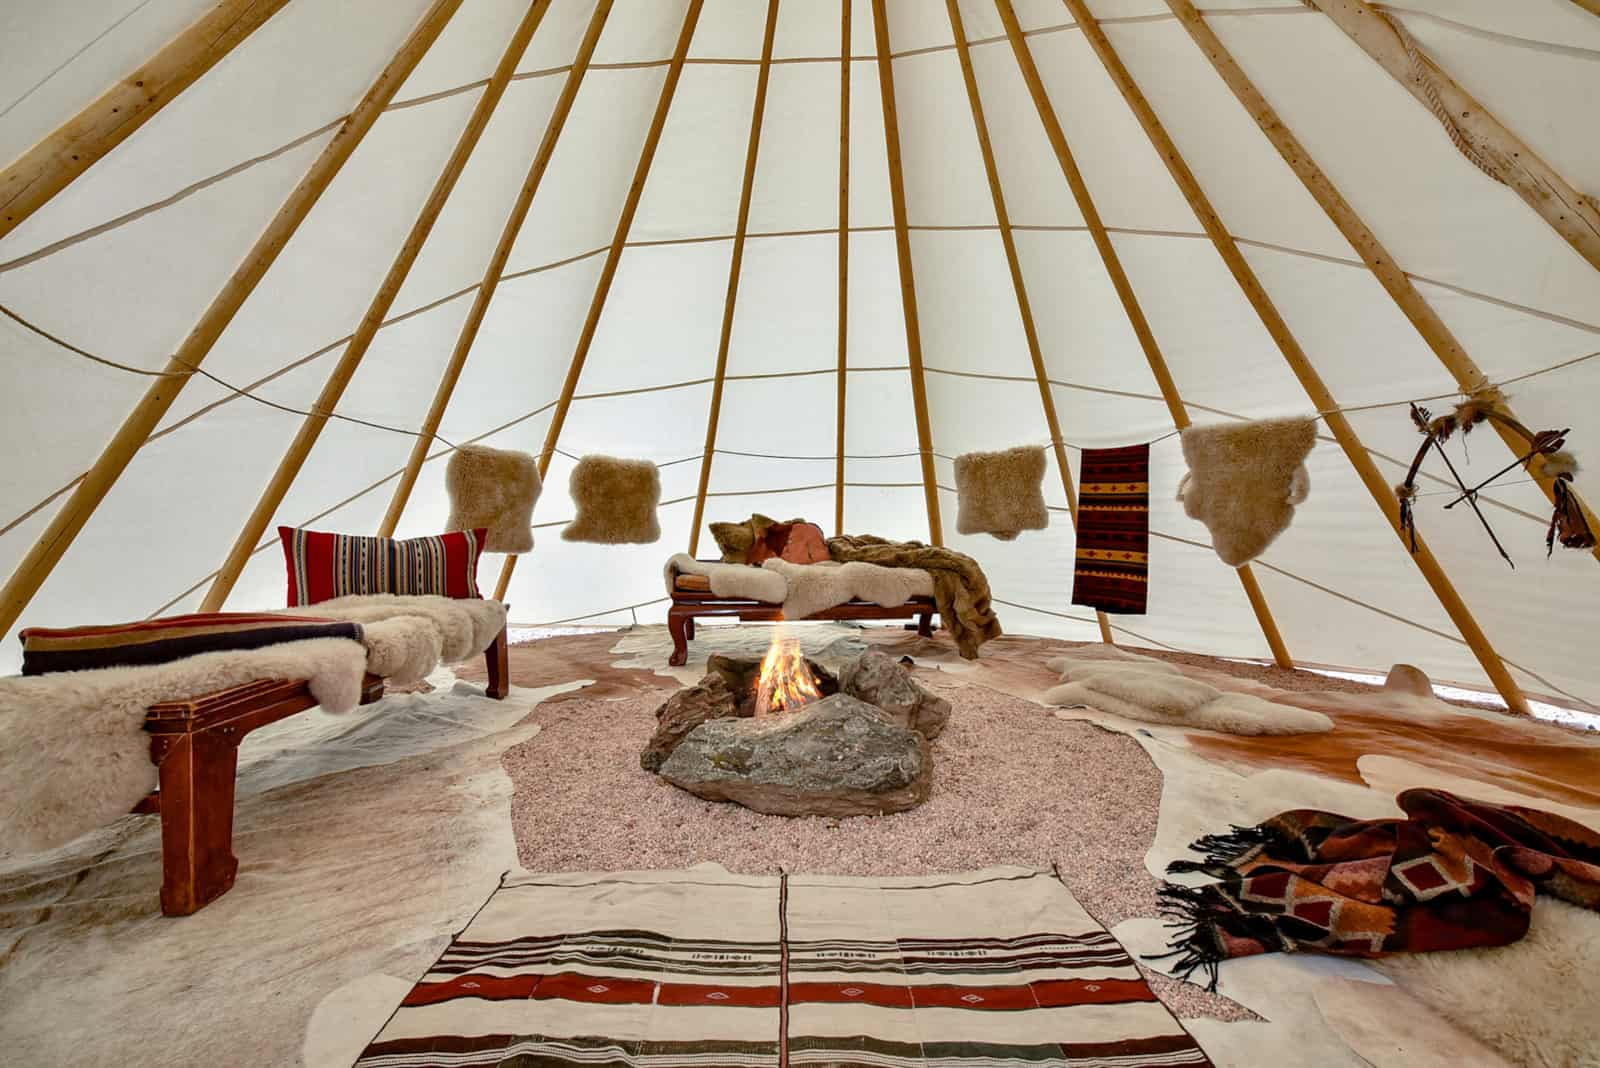 10 Best Glamping Resorts In Colorado For Epic Outdoor Adventures Frozen yogurt locations near me san diego, ca form. 10 best glamping resorts in colorado